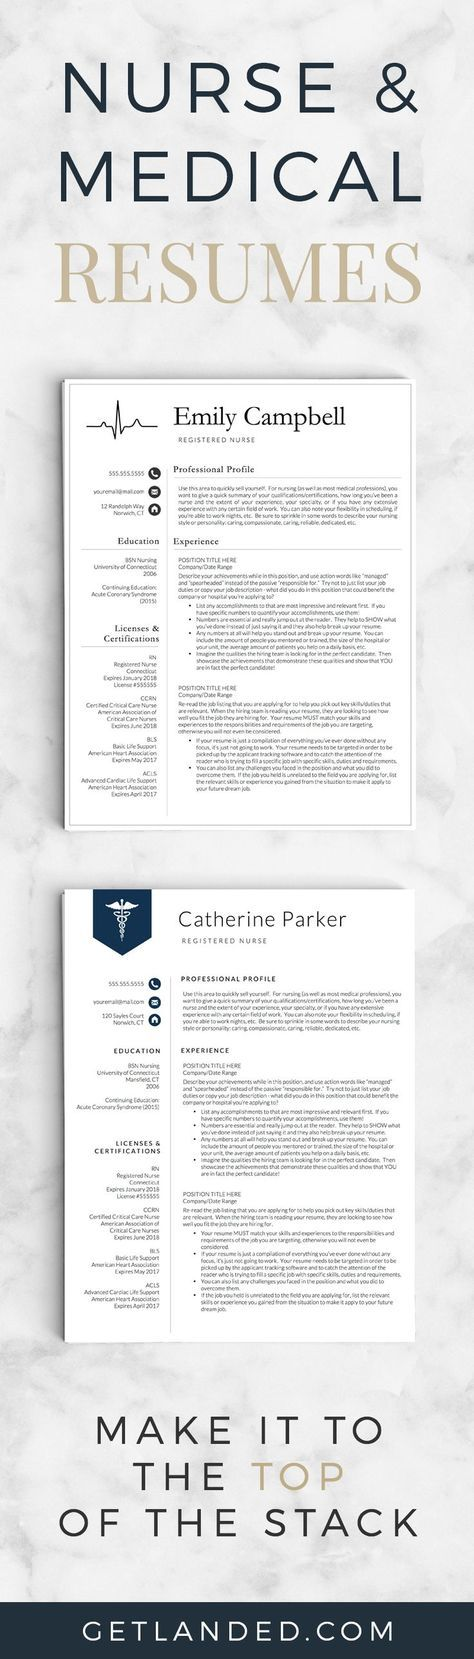 Nurse resume templates Medical resumes Resume templates - nurse resume templates